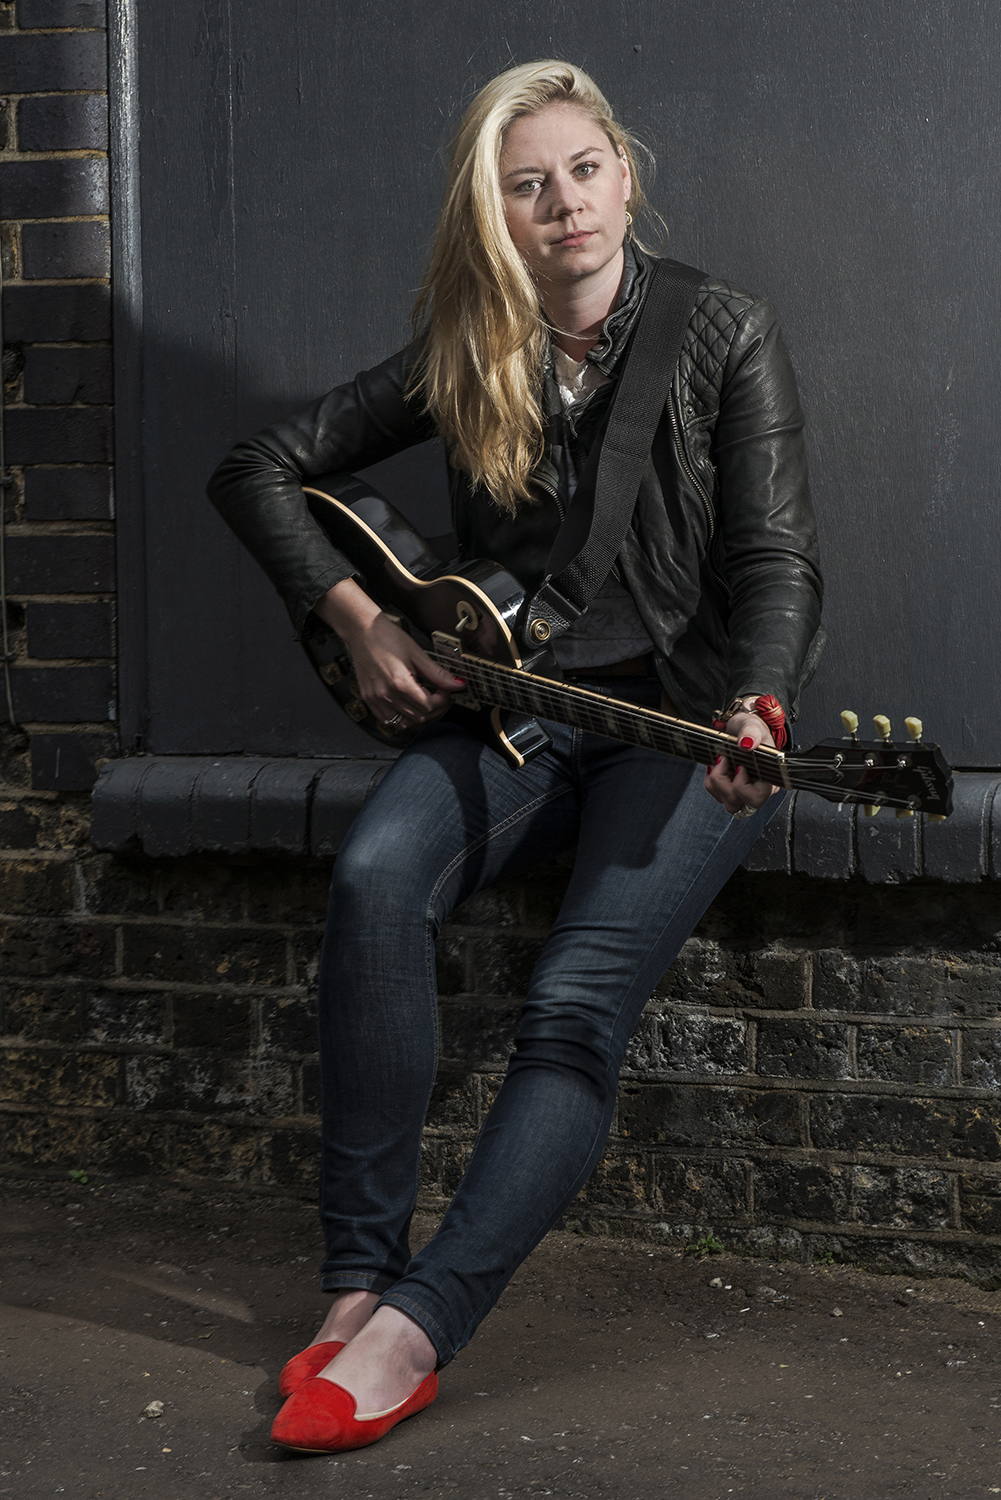 joanne shaw taylor releases of her new studio album  u201cthe dirty truth u201d on monday 22nd september